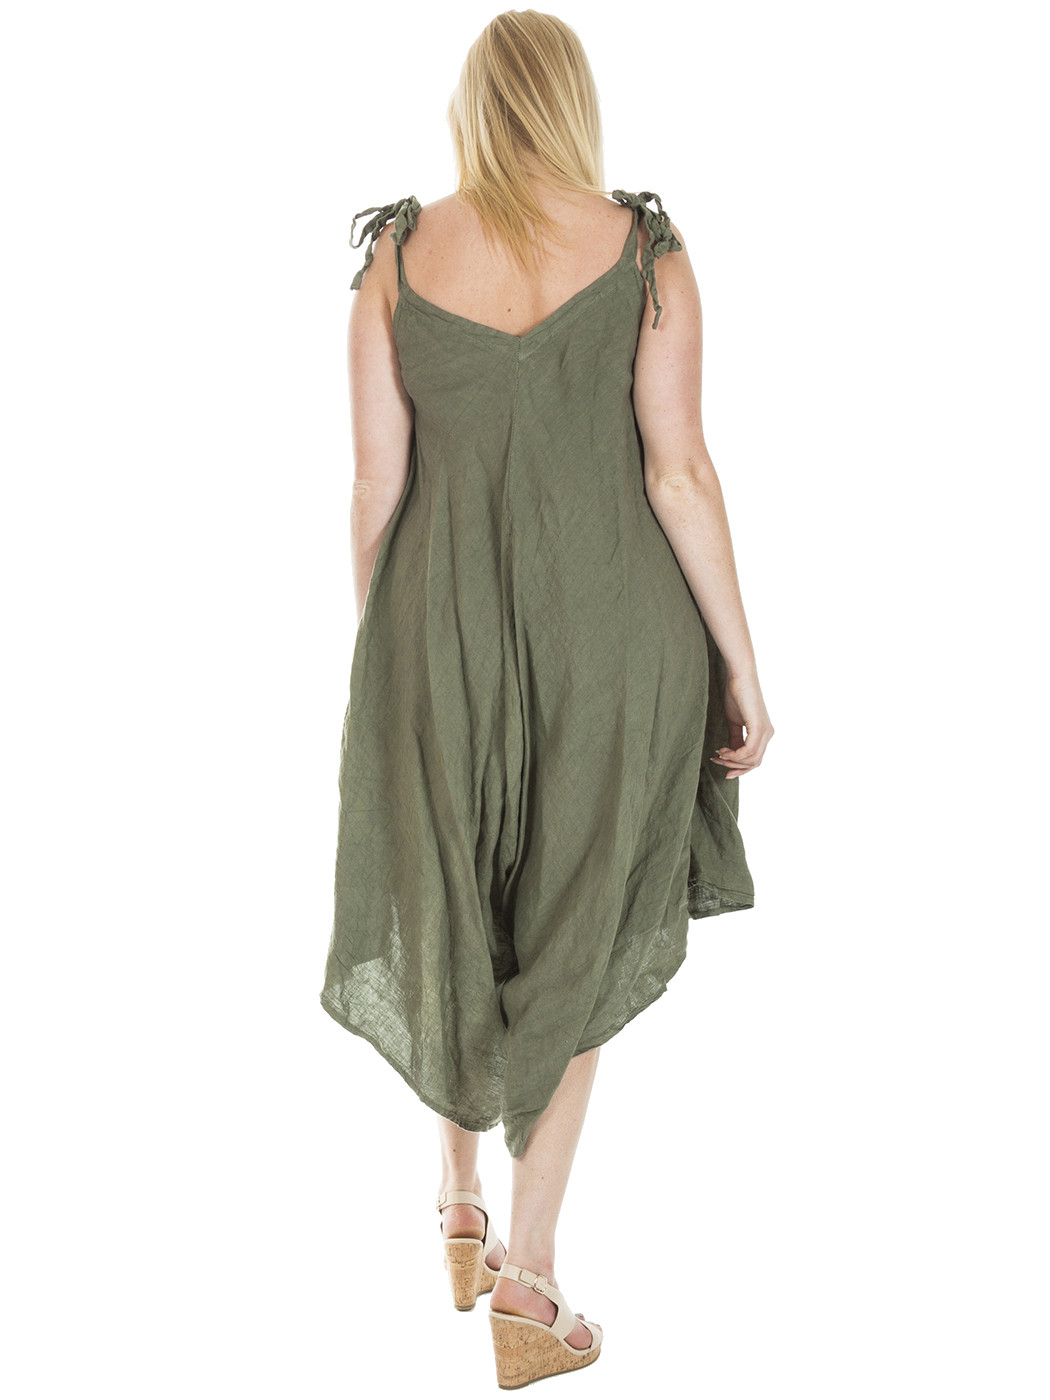 Light, lovely and simple, Vivid Linen clothes are sure to delight your feminine Styles: Comfy, Relaxing, Elegant.